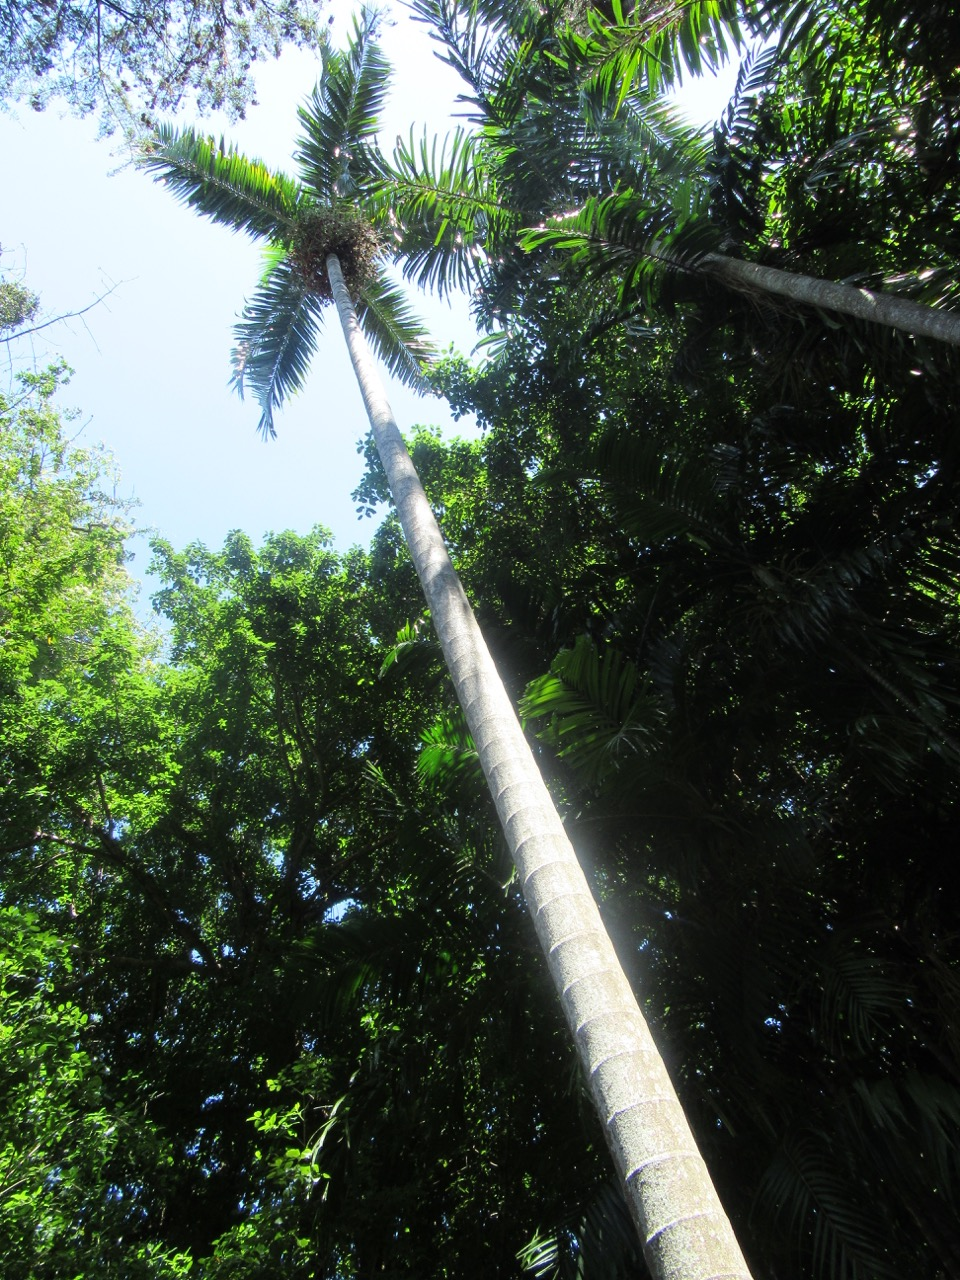 One of the tallest trees in the Botanical Gardens.